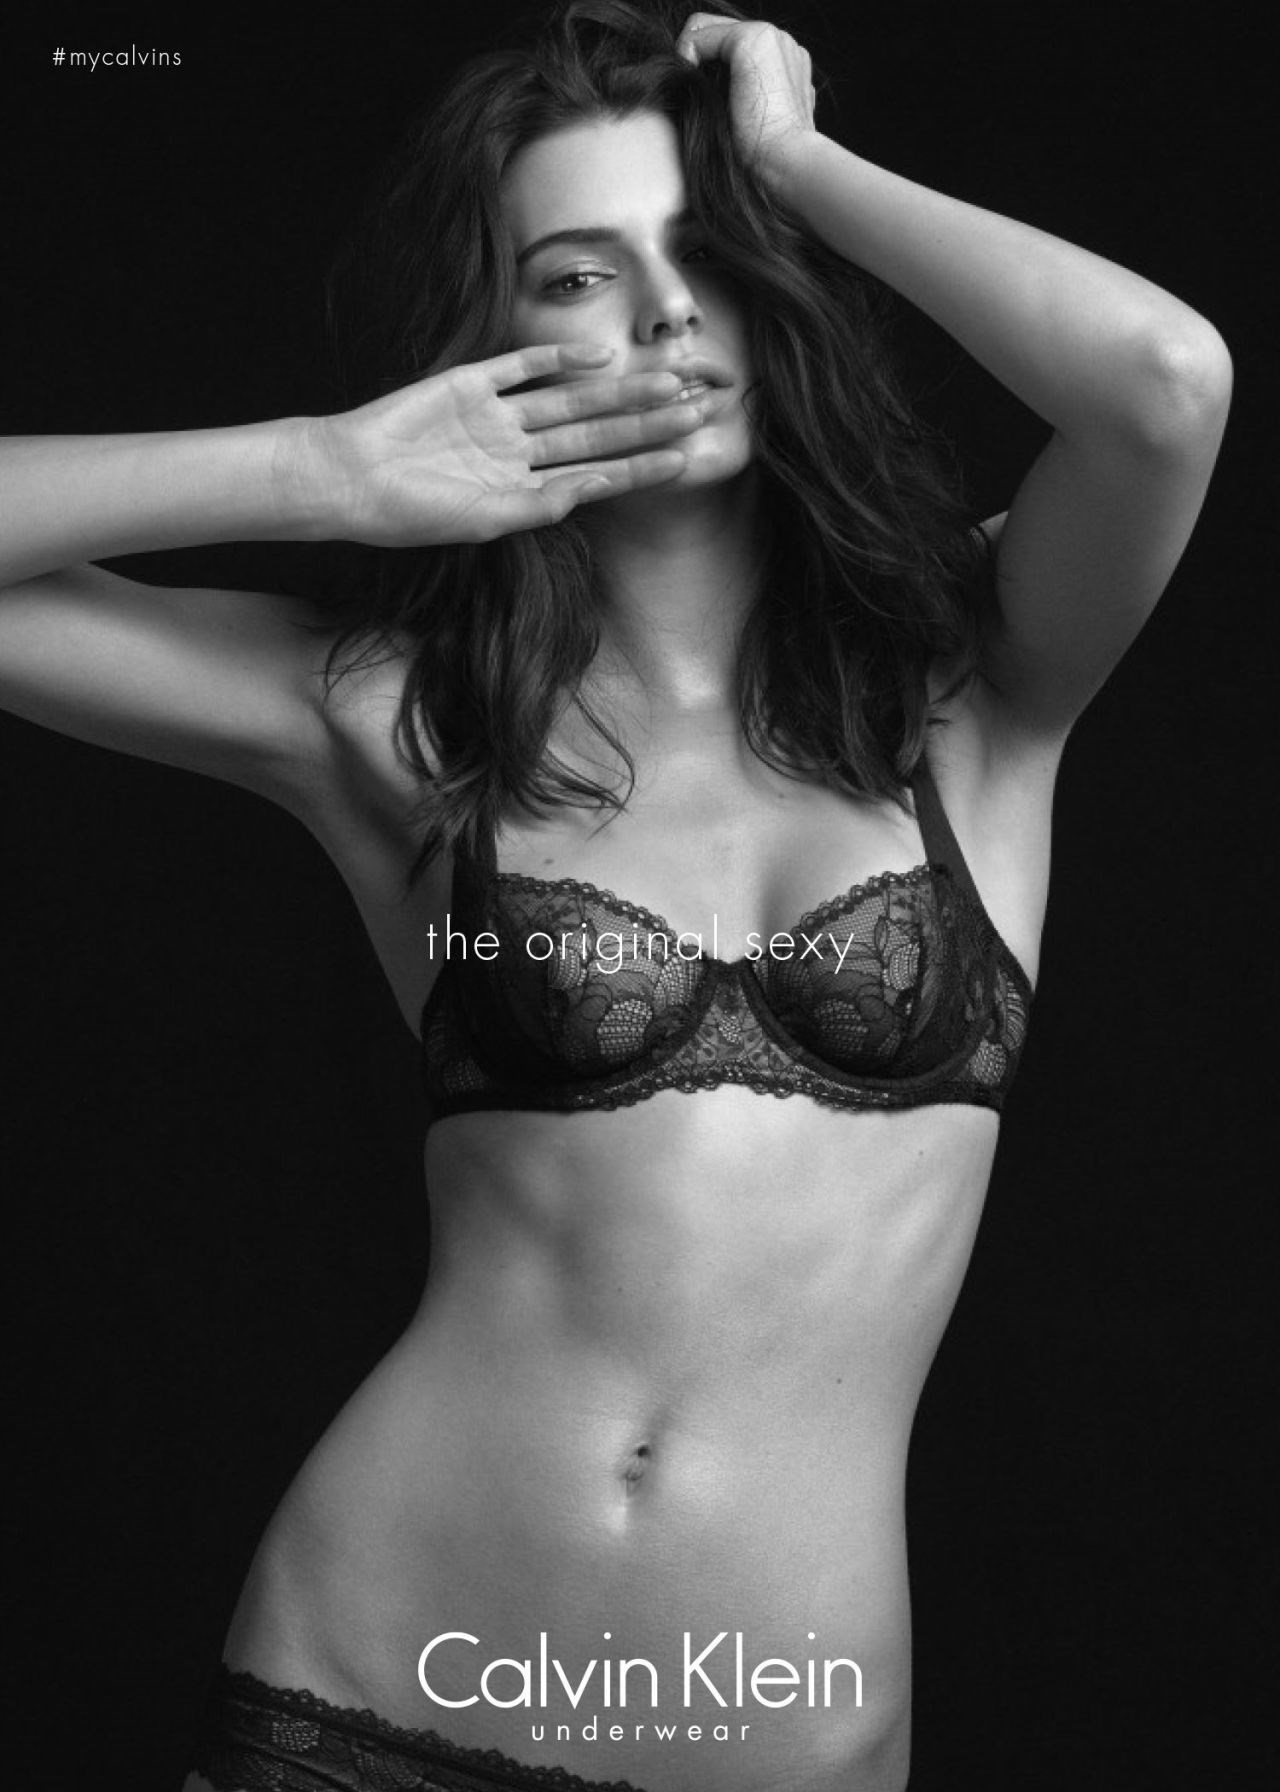 c5cace798115 Kendall Jenner is the new face of Calvin Klein underwear | Dazed